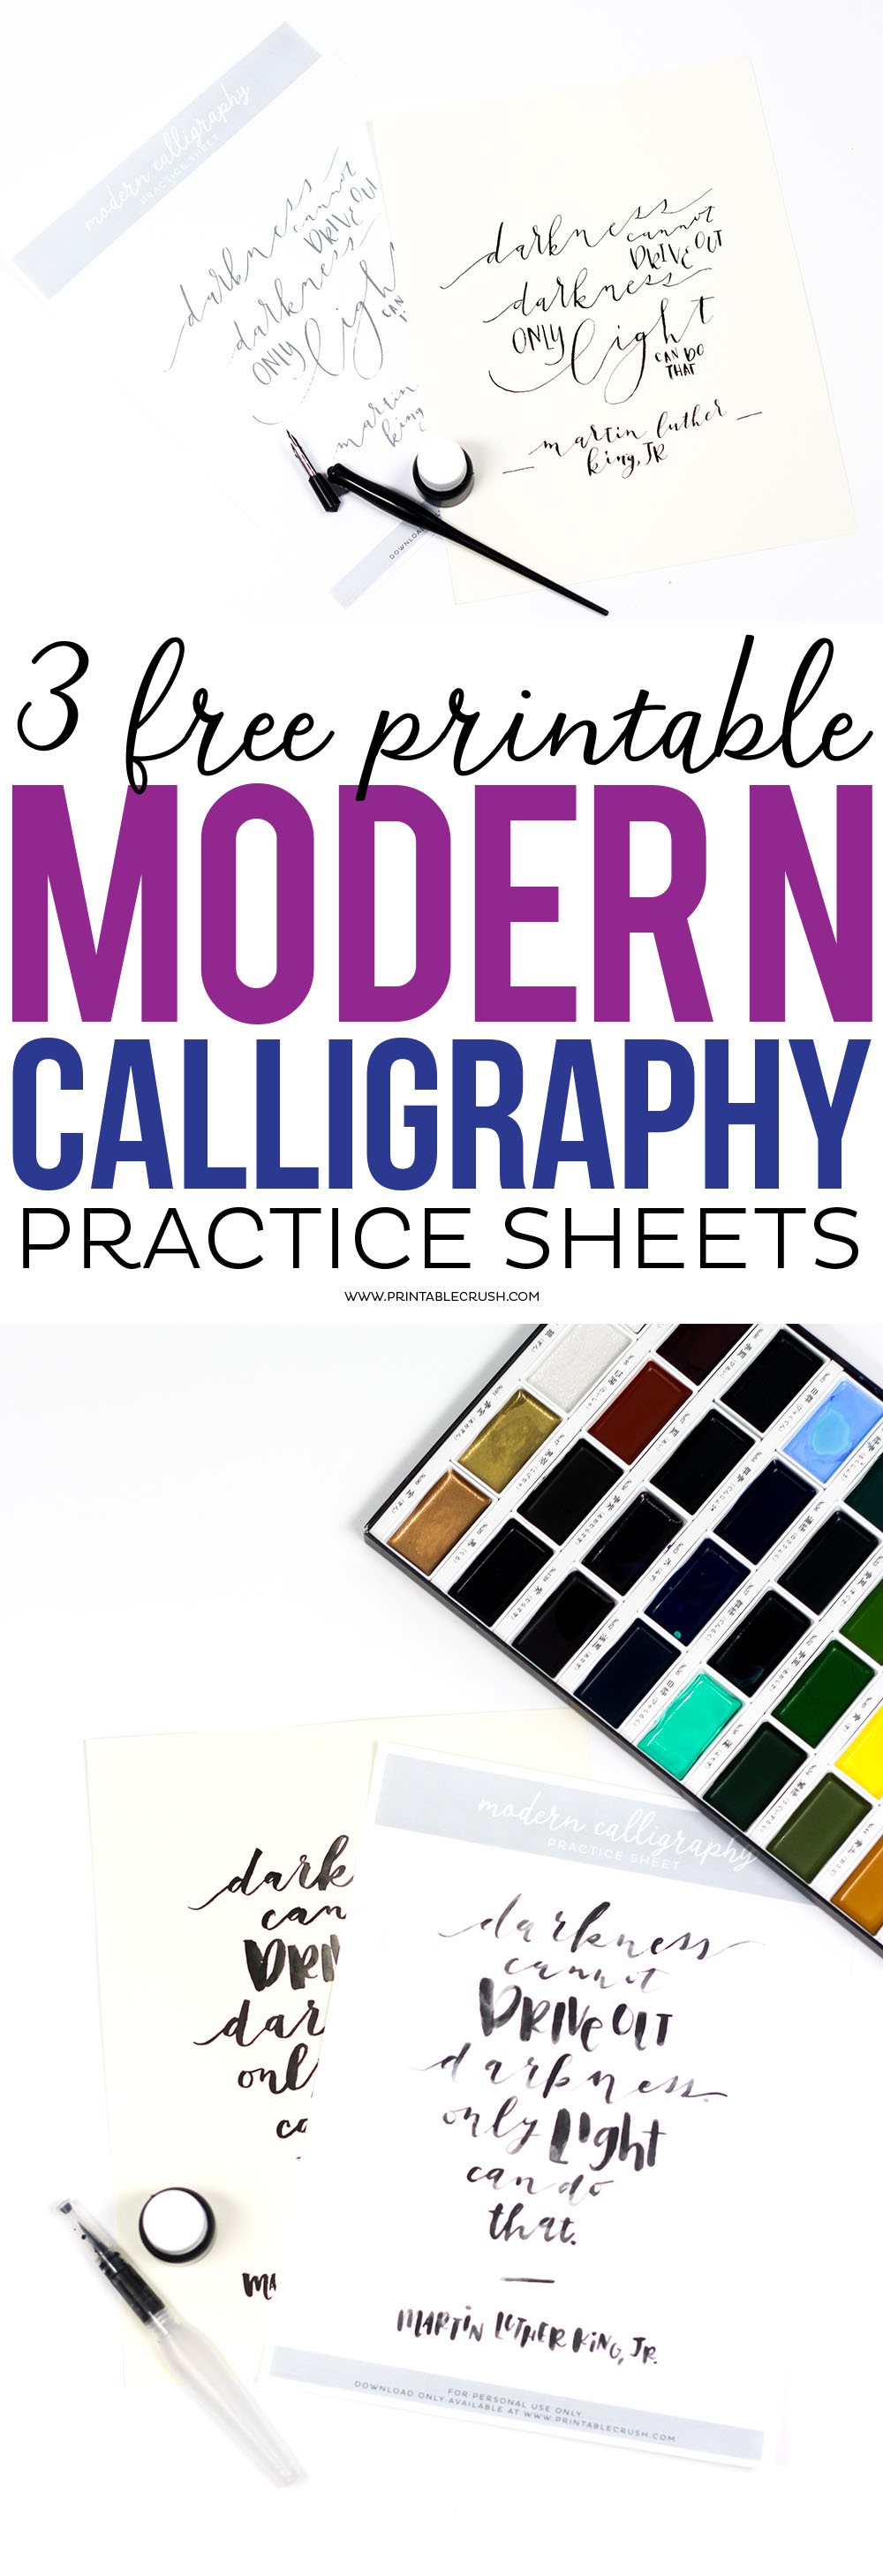 Download these3 Free Printable Modern Calligraphy Practice Sheets to try 3 different lettering styles. Plus, discover new calligraphy materials.